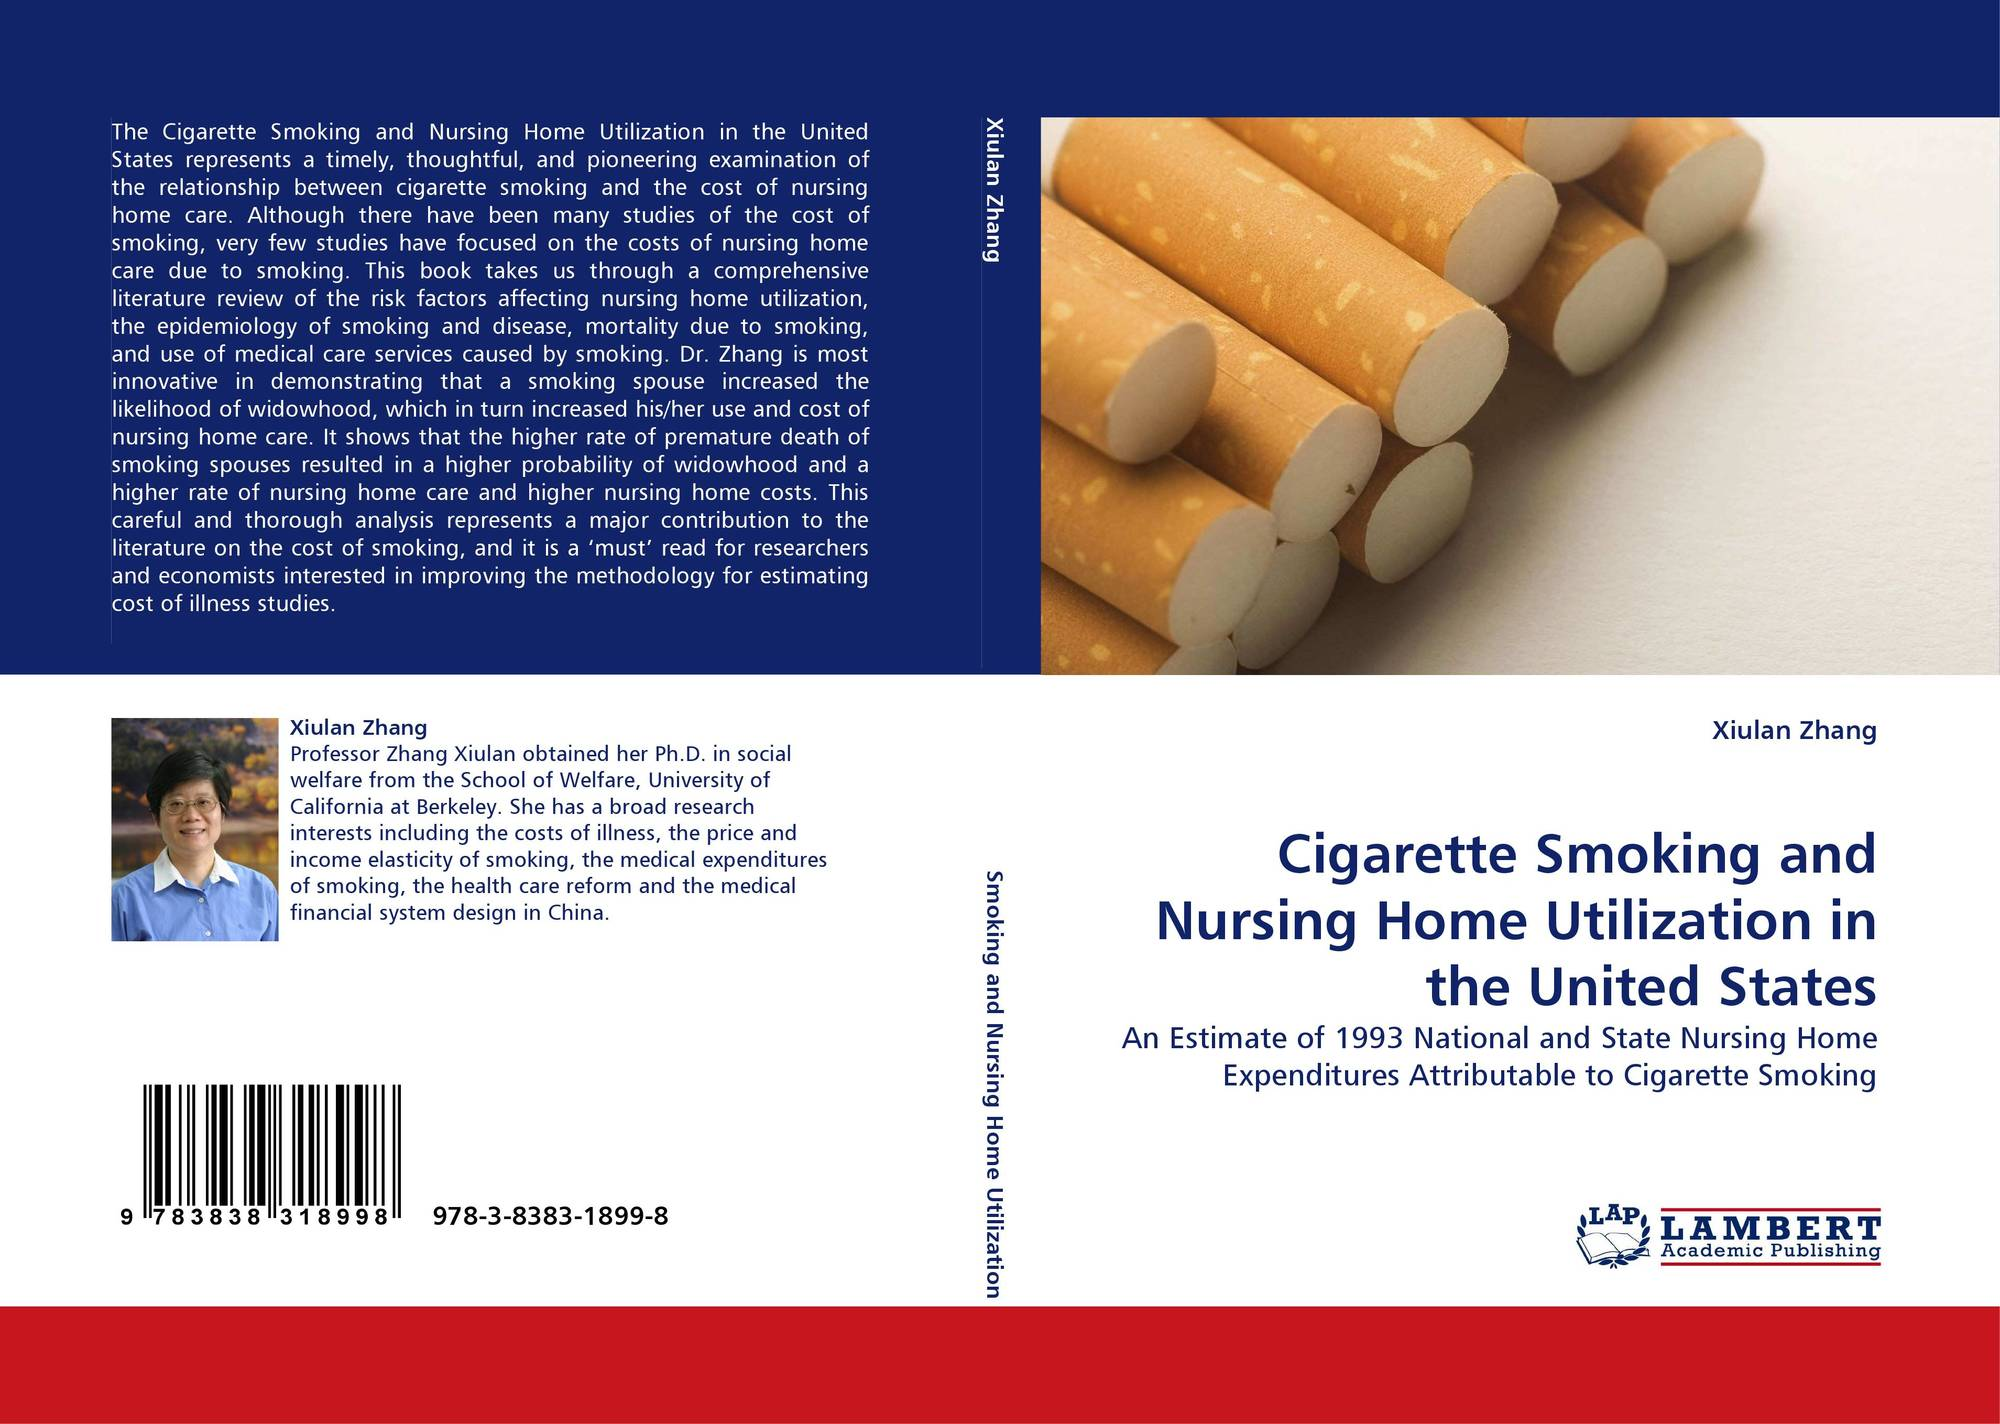 Cigarette Smoking and Nursing Home Utilization in the United States